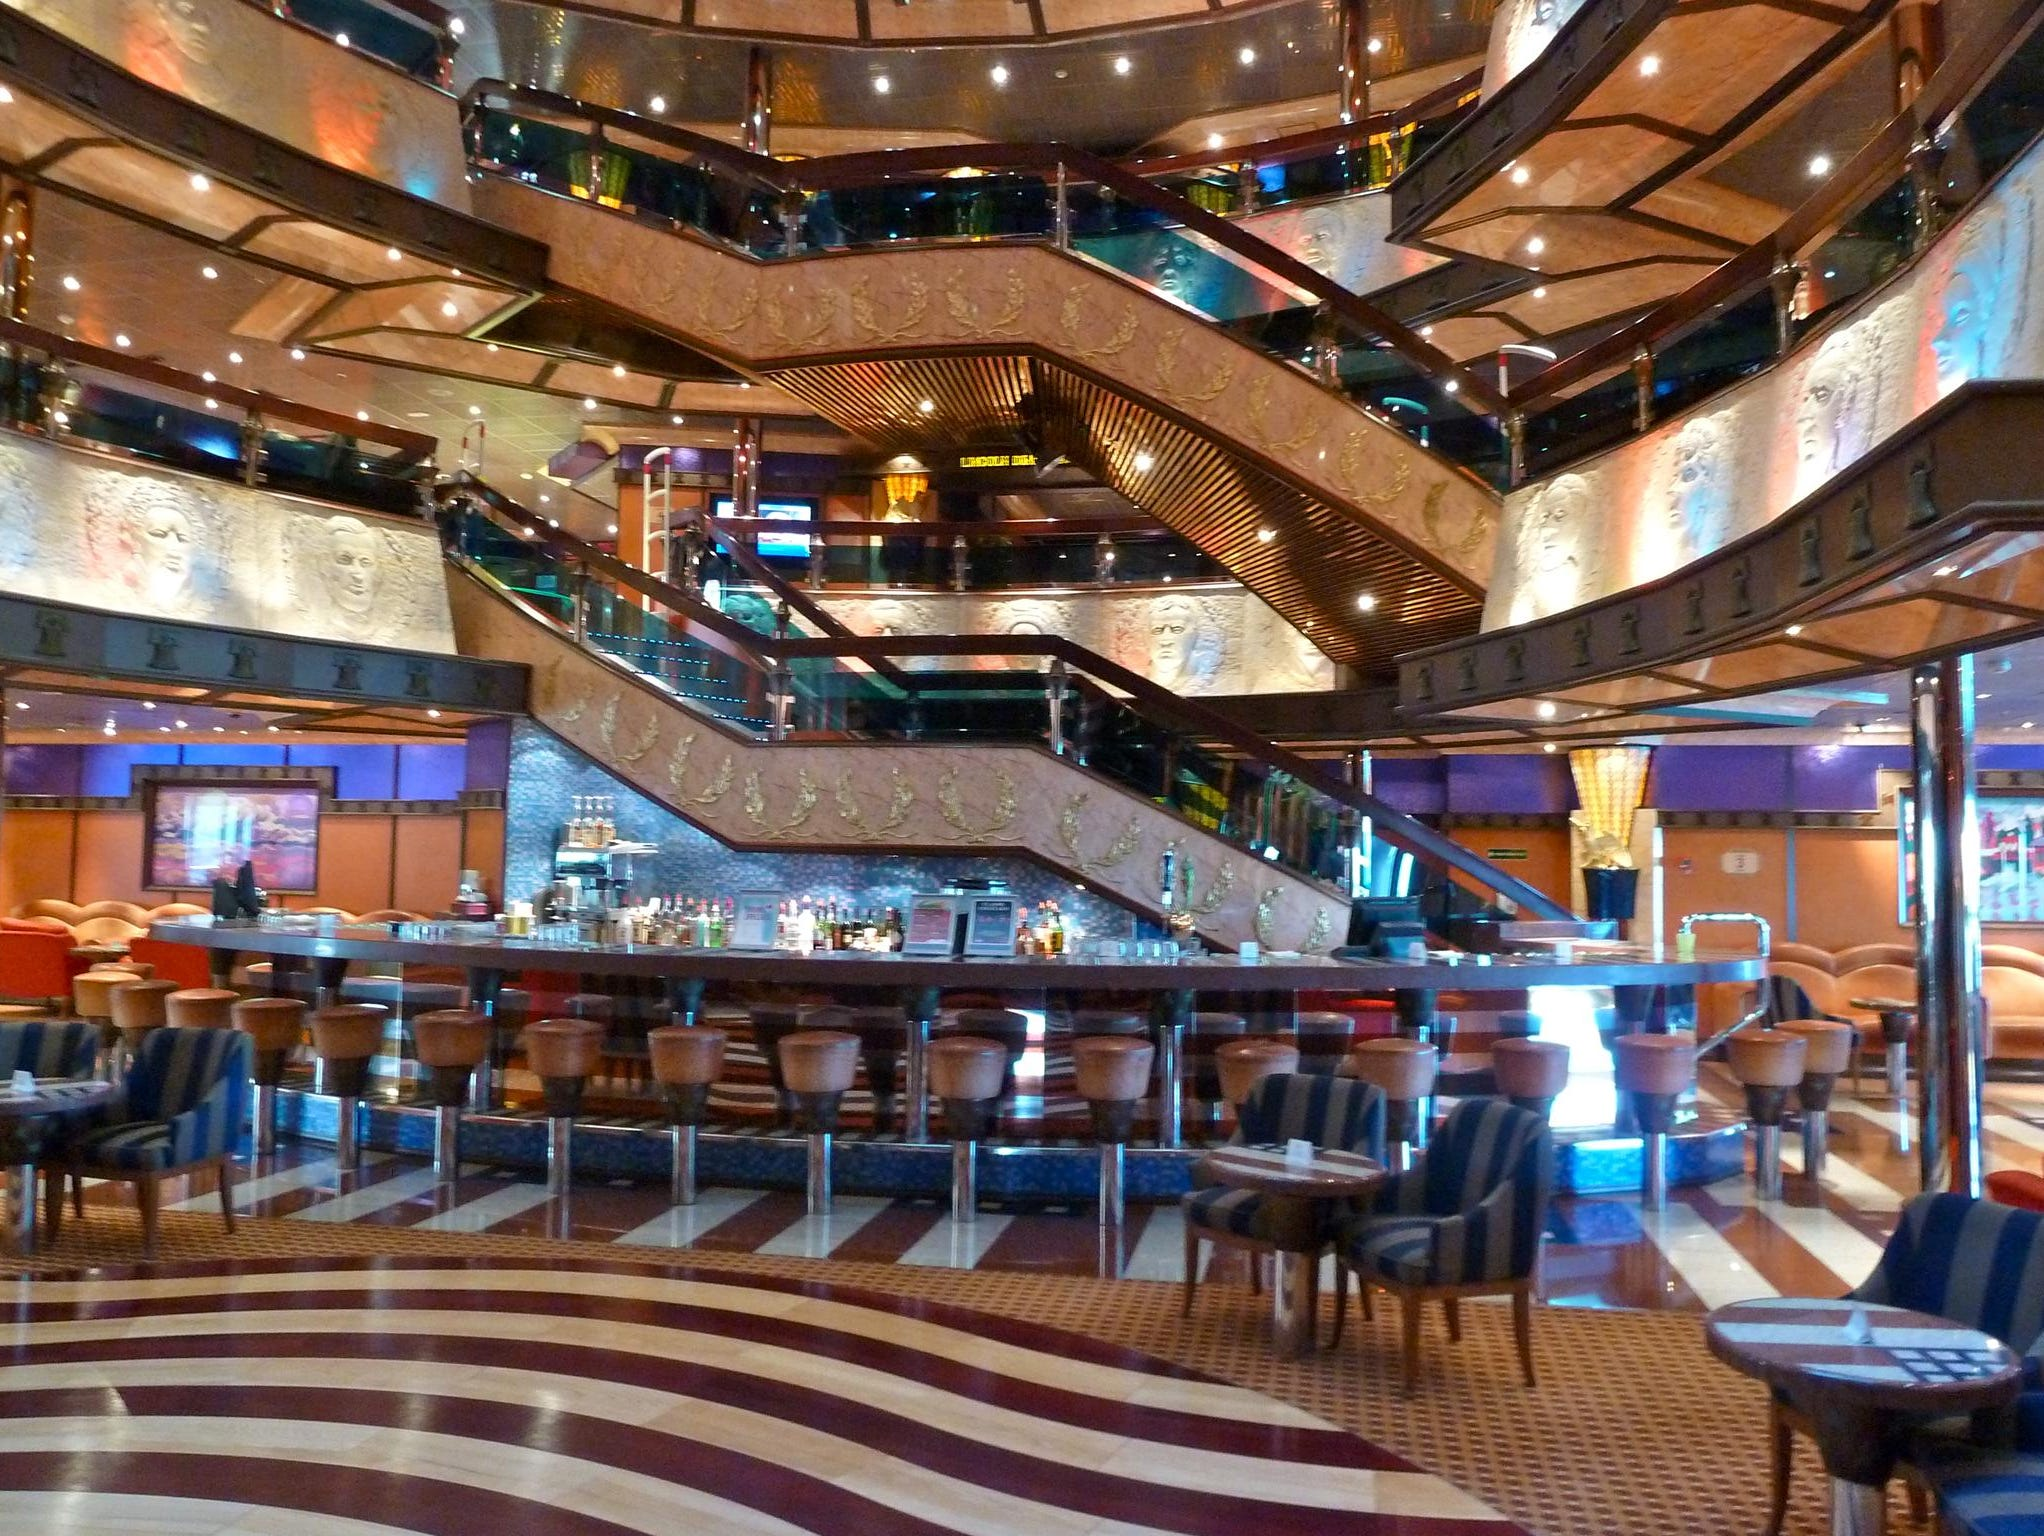 Most people enter the Carnival Valor on the Deck 3 level of the Atrium America near the aptly named American Bar.